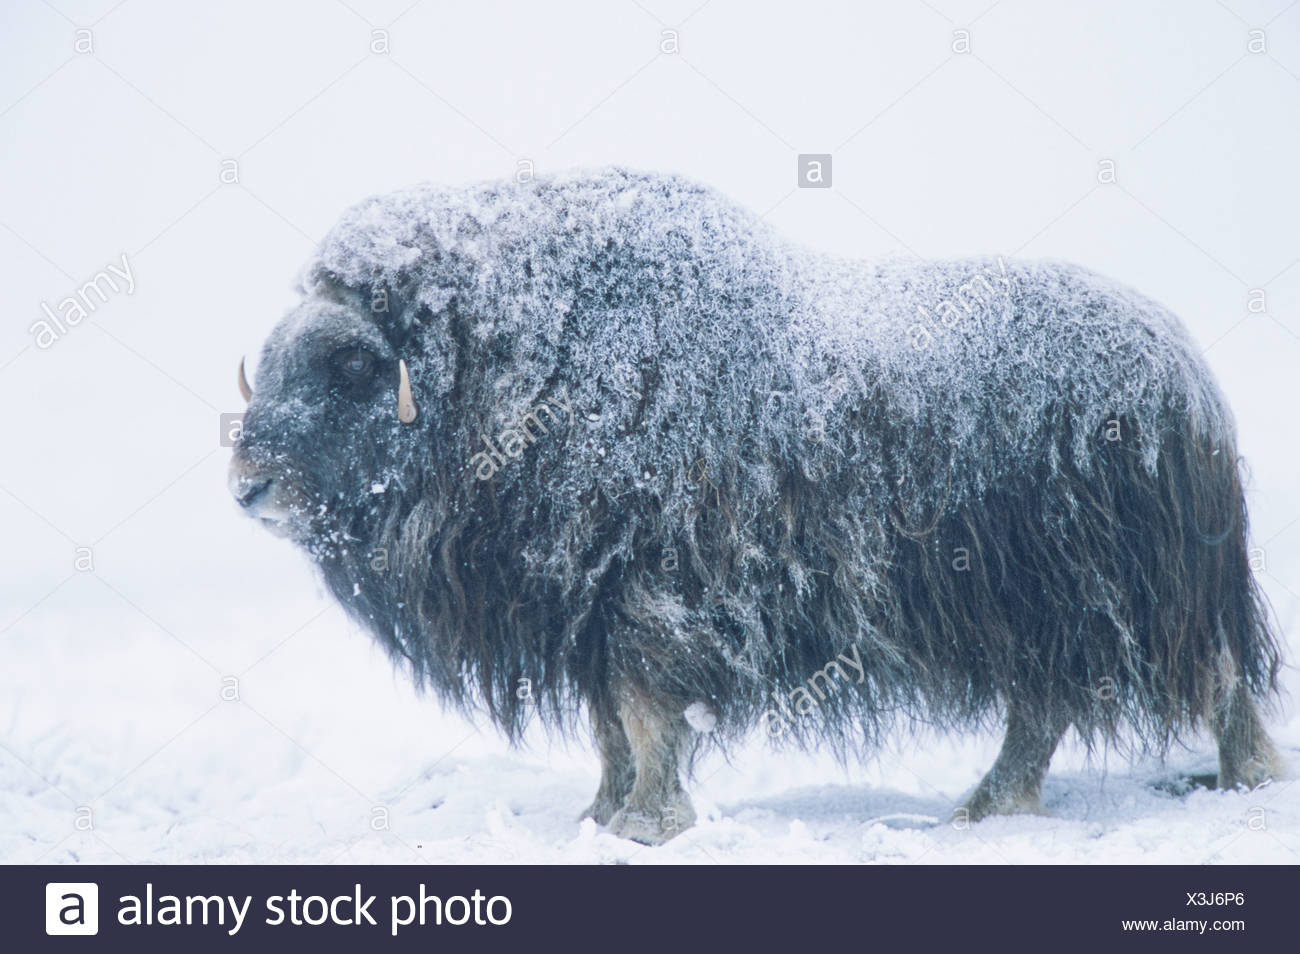 Alaska, Arctic National Wildlife Refuge / ANWR. Frozen tundra in winter hosts the Musk Ox, a prehistoric mammal that survives in the coldest of Arctic - Stock Image